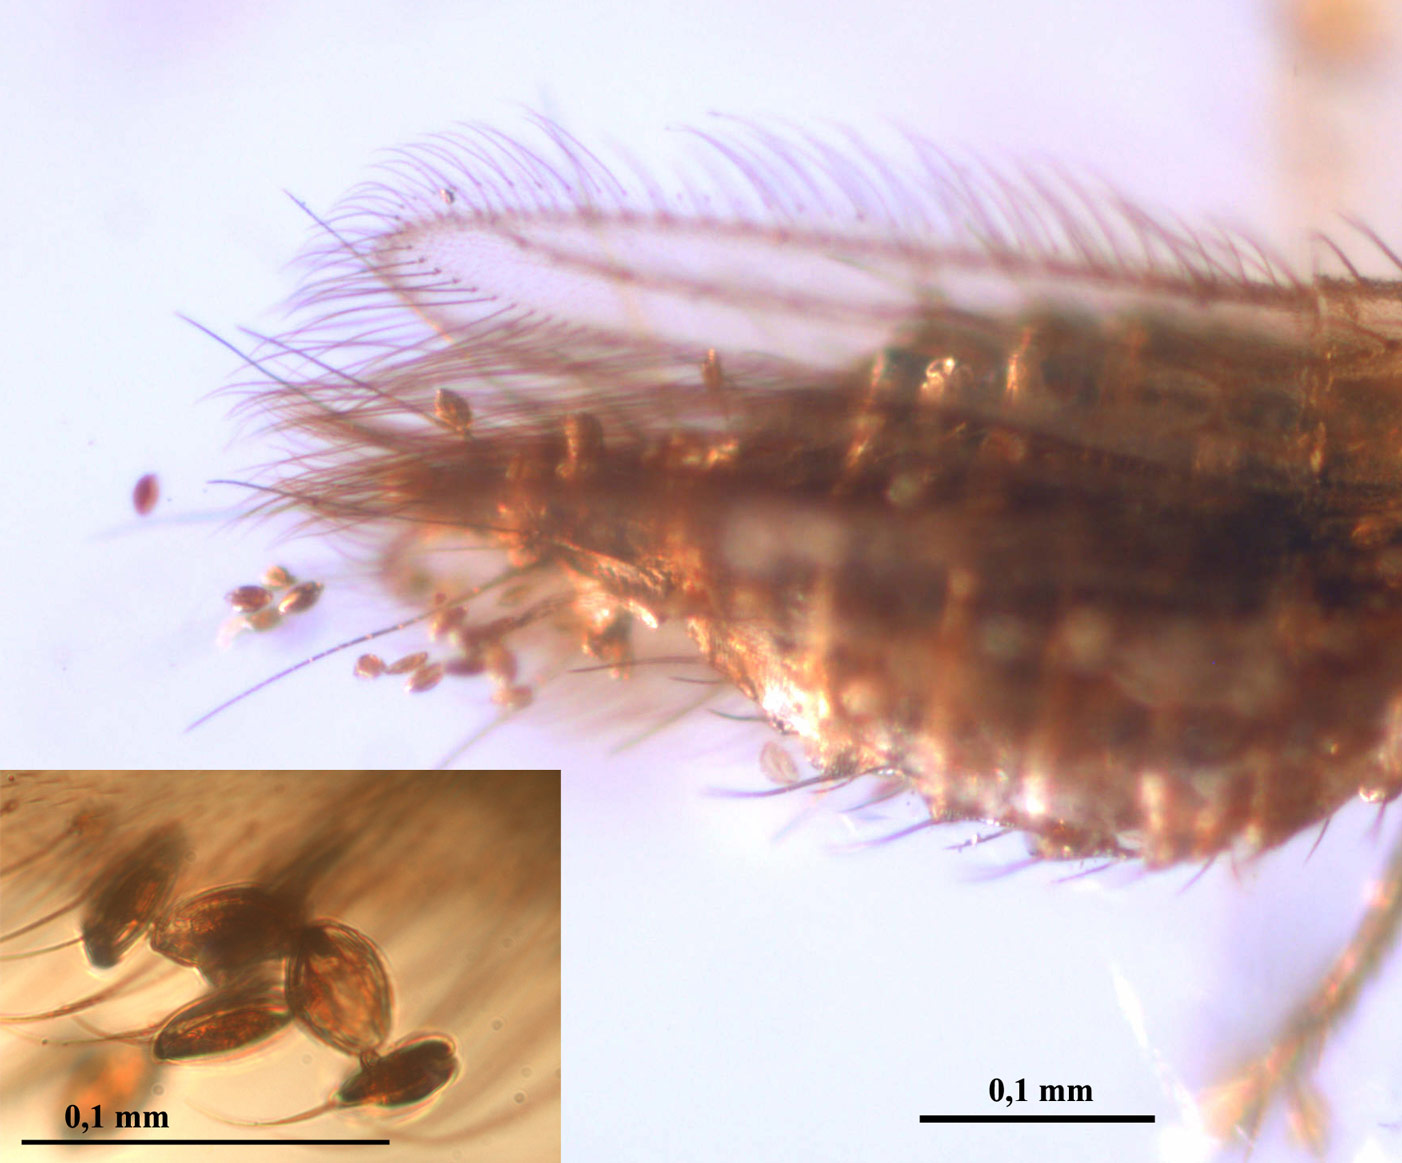 Fossilized Beetle Is Earliest Evidence of Insect Pollinator